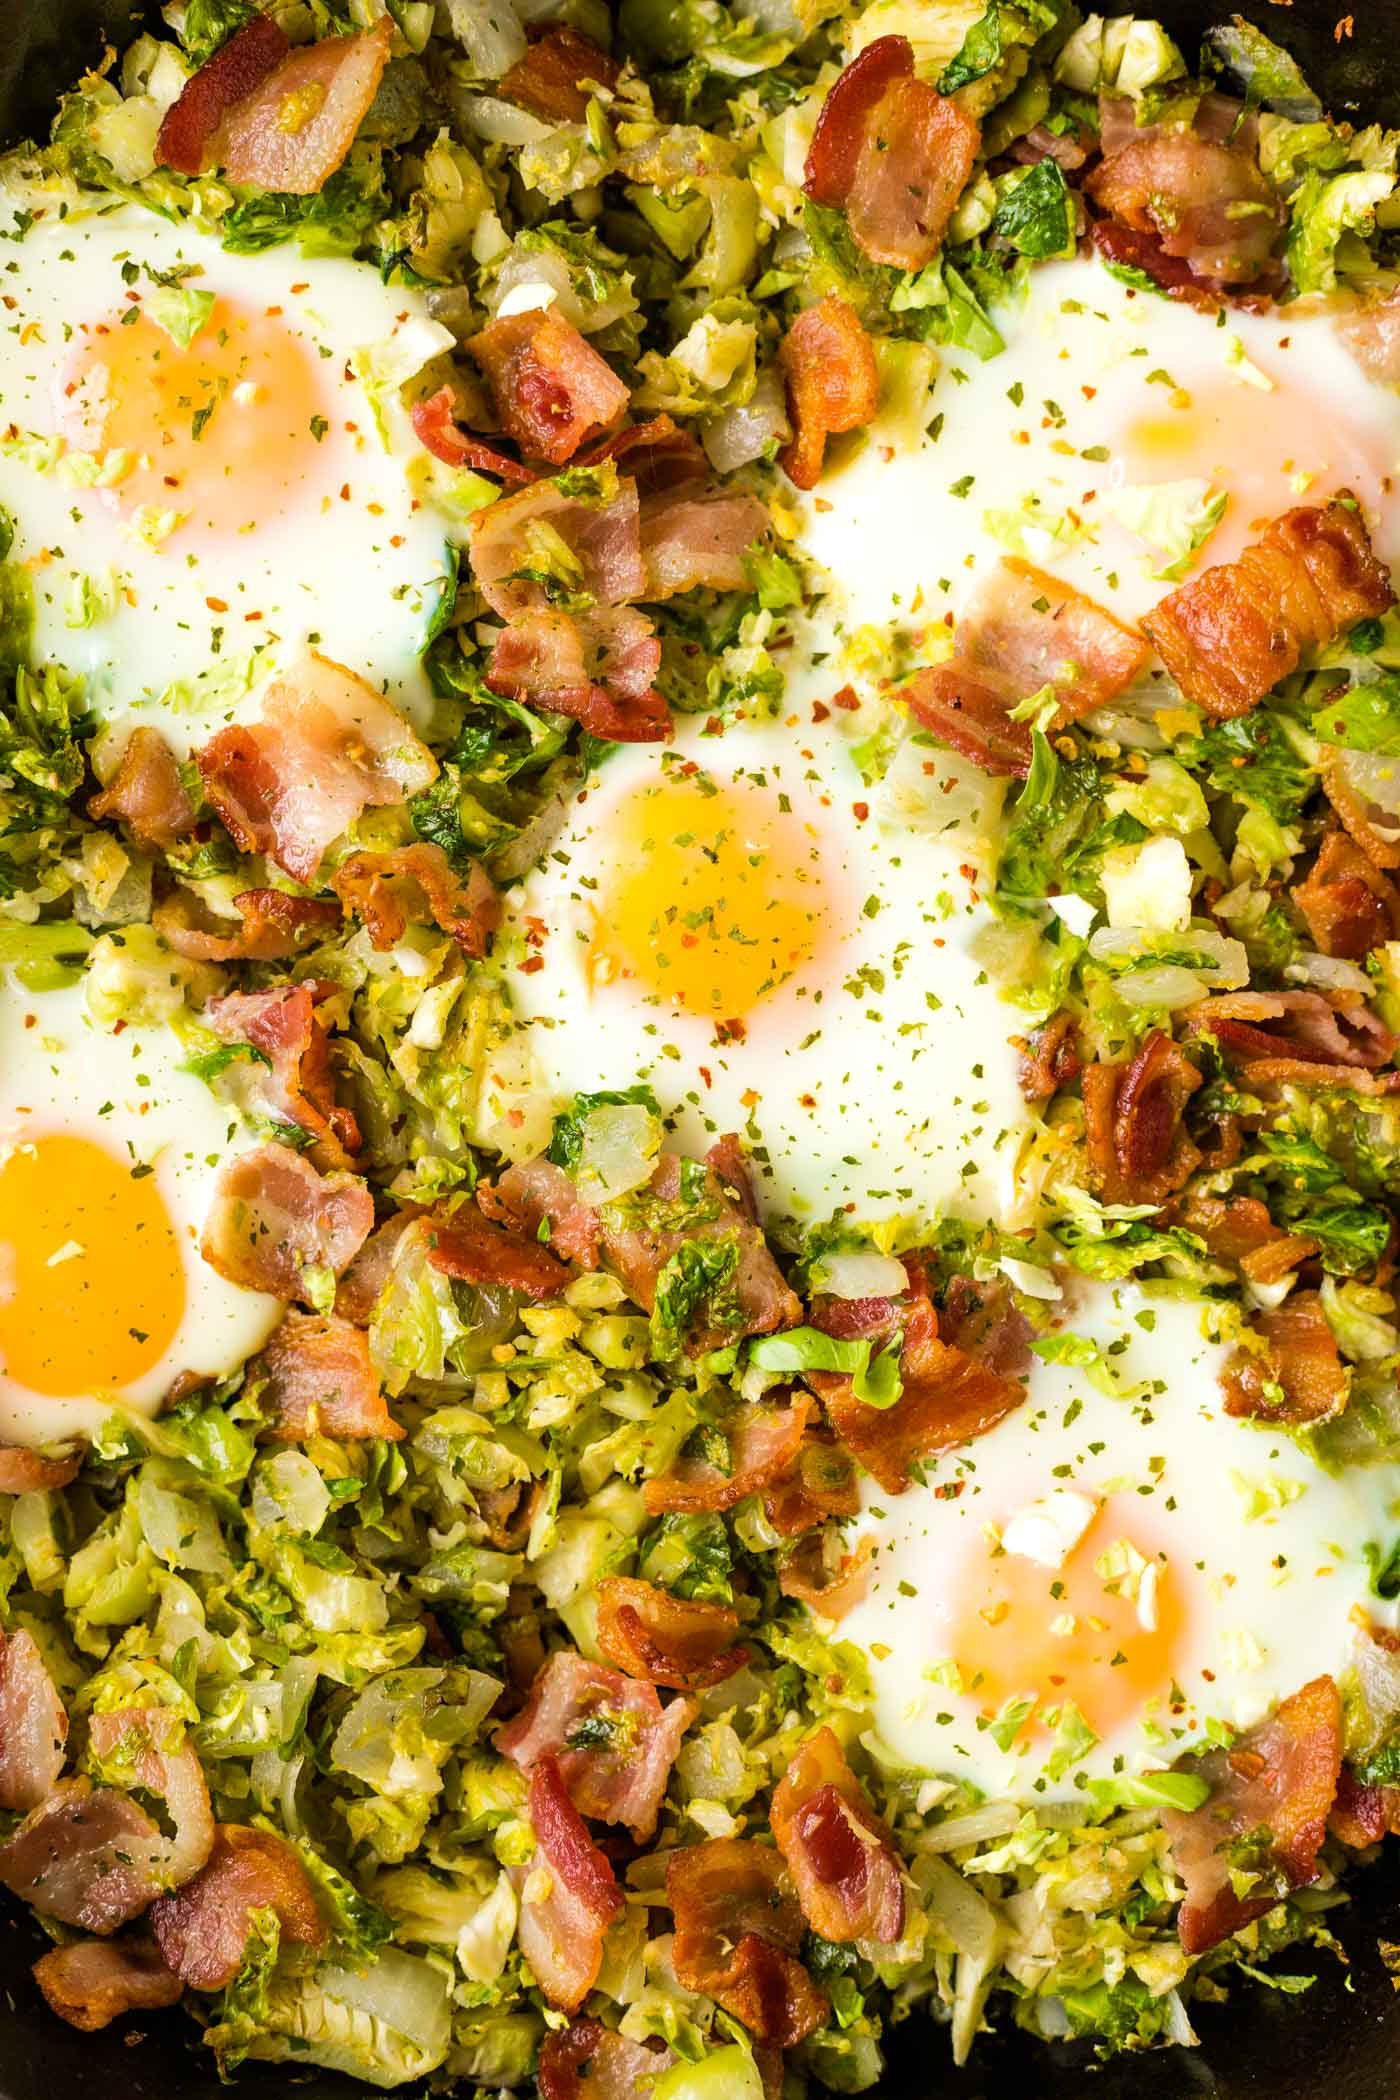 Cooked shredded brussels sprouts, bacon, and eggs